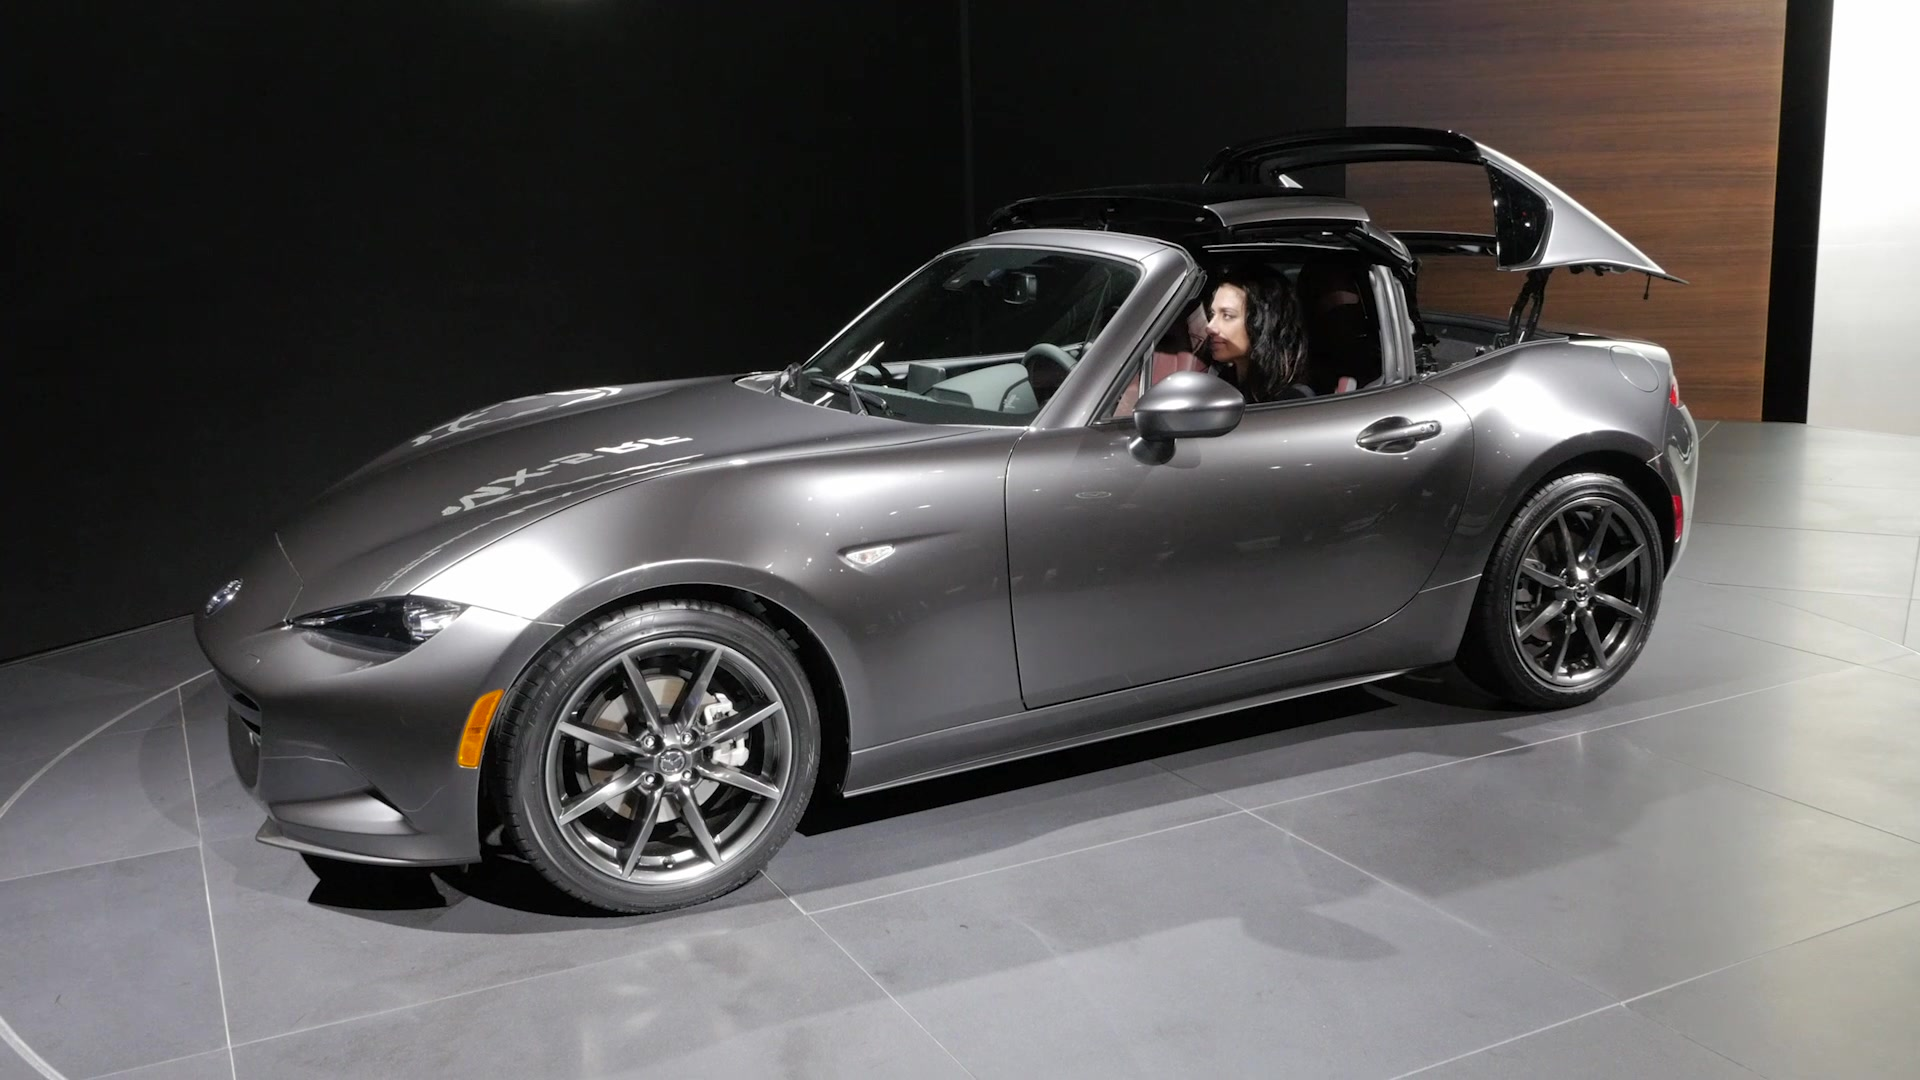 Bmw Z4 Shooting Brake This Is The New Toyota Supra